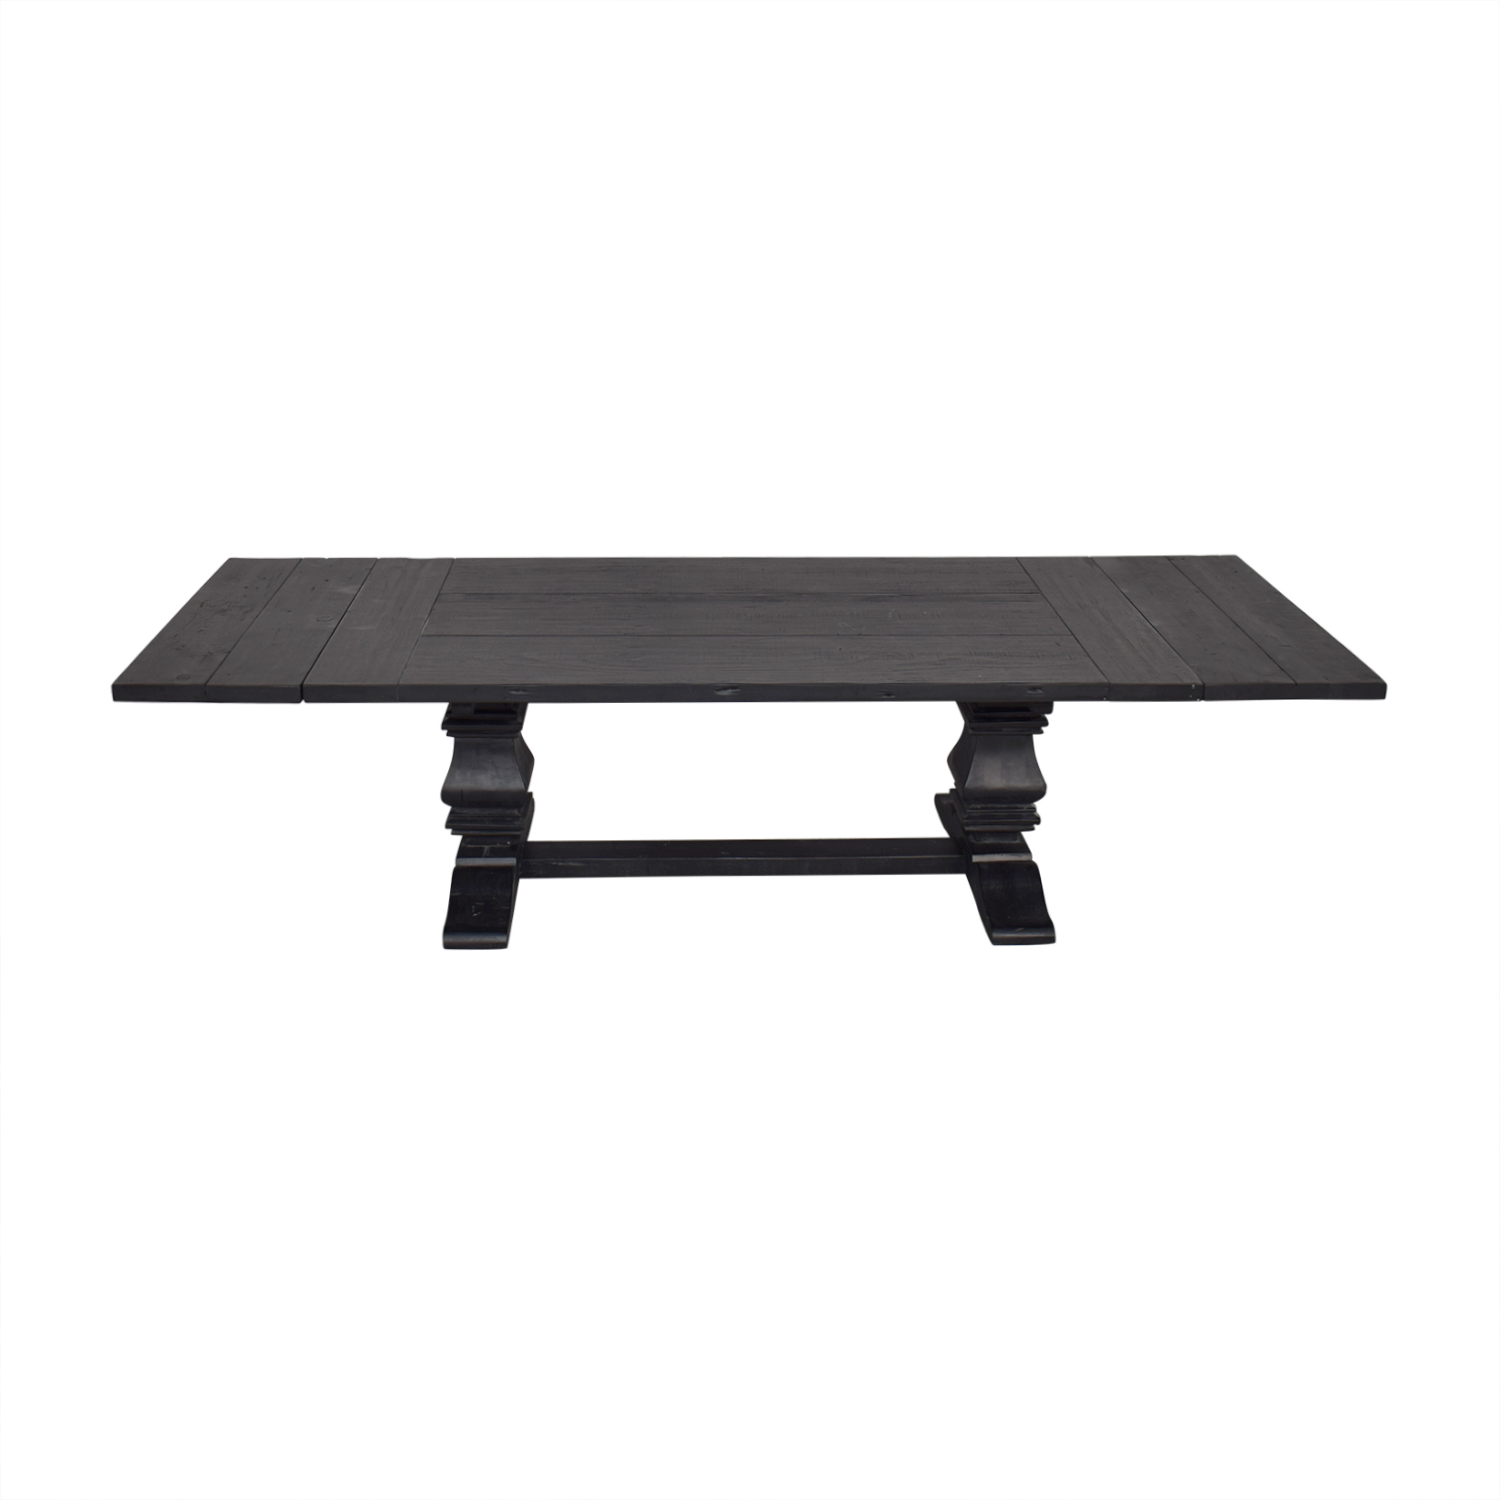 Restoration Hardware Restoration Hardware Salvaged Wood Trestle Rectangular Extension Dining Table coupon